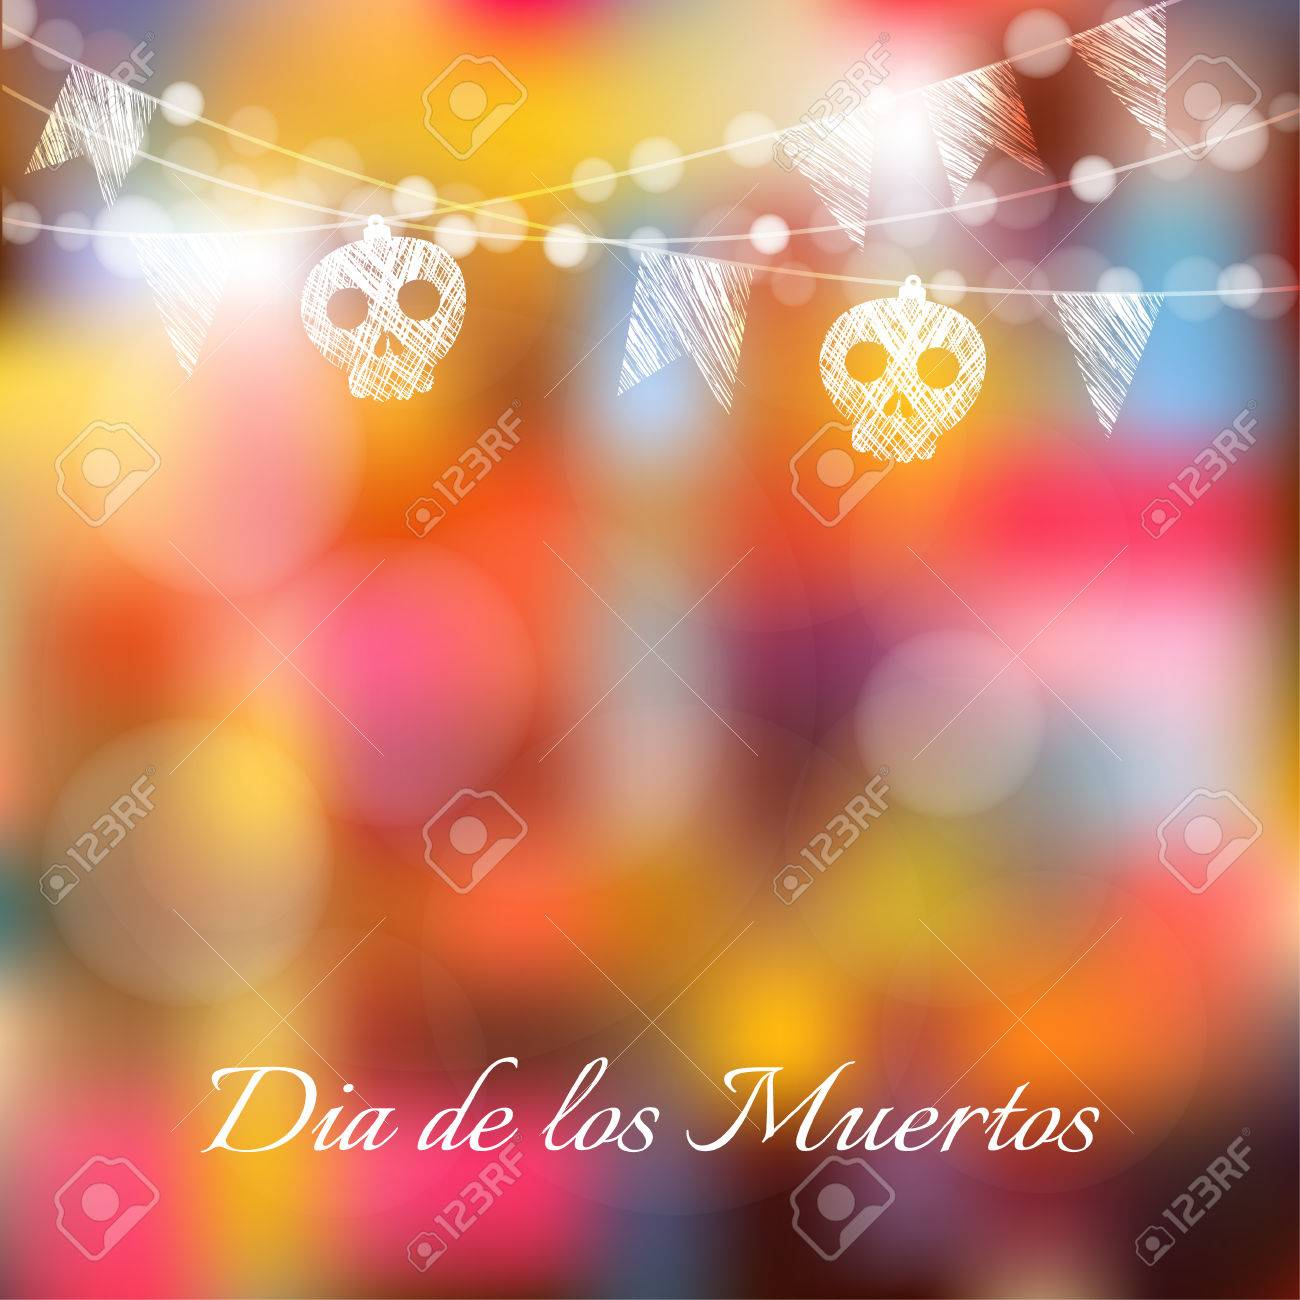 Dia de los muertos (Day of the Dead) or Halloween card, invitation with garland of lights, sculls and party flags, vector illustration background - 45278000